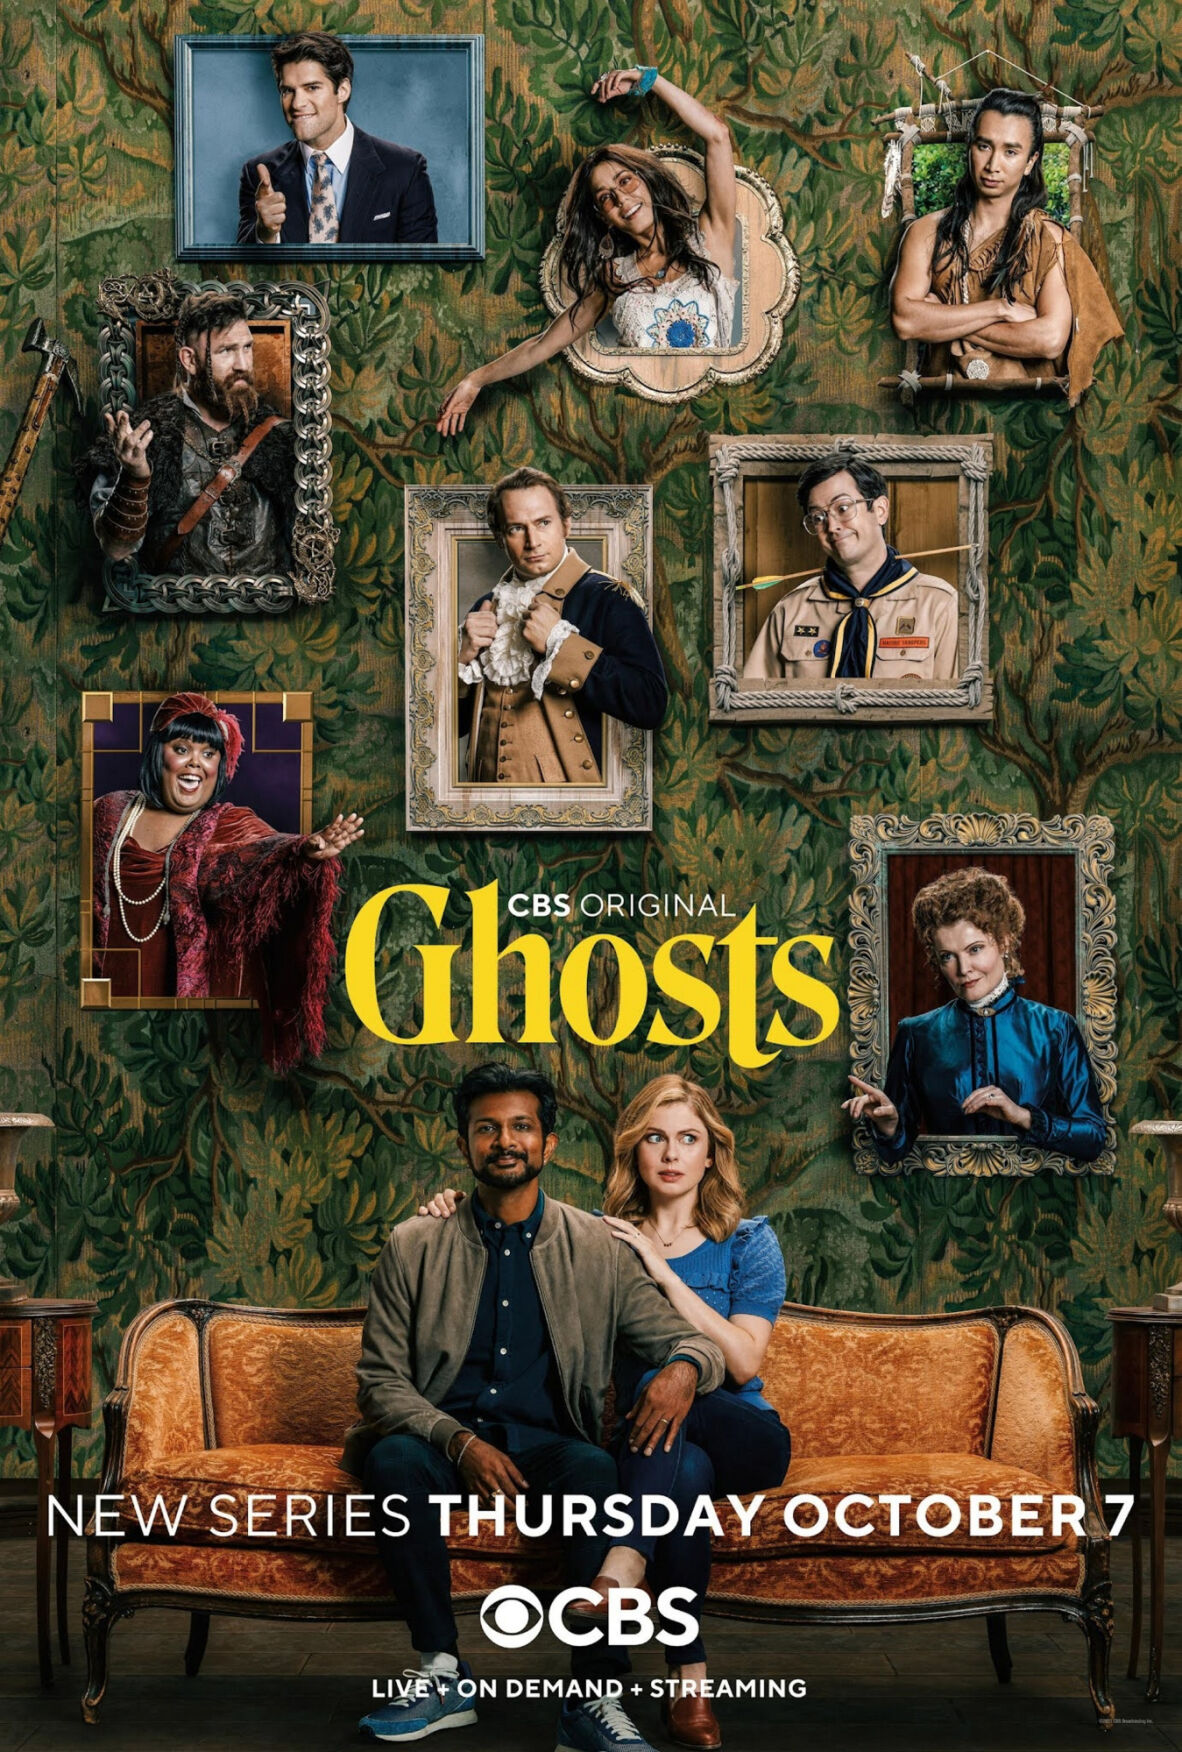 'Ghosts' make for strange bedfellows in CBS sitcom